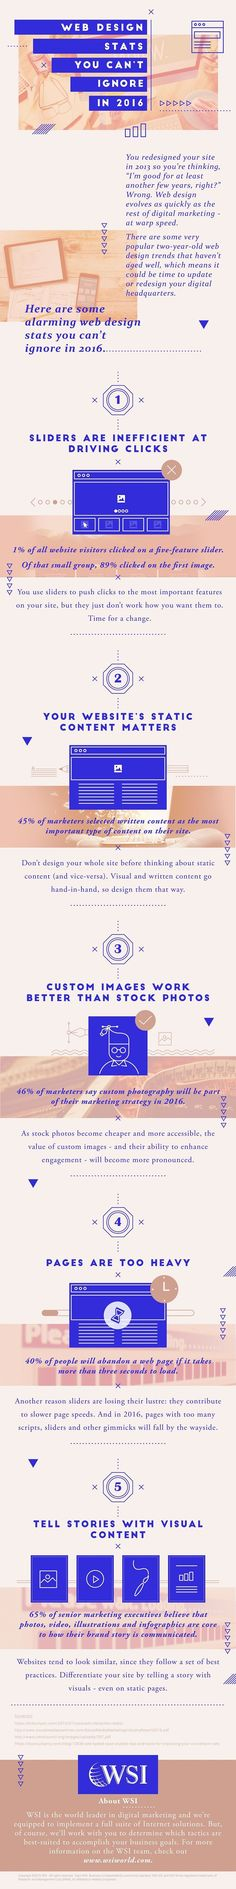 Web Design Stats You Can't Ignore in 2016 - infographic. Web Design. Opus Online.